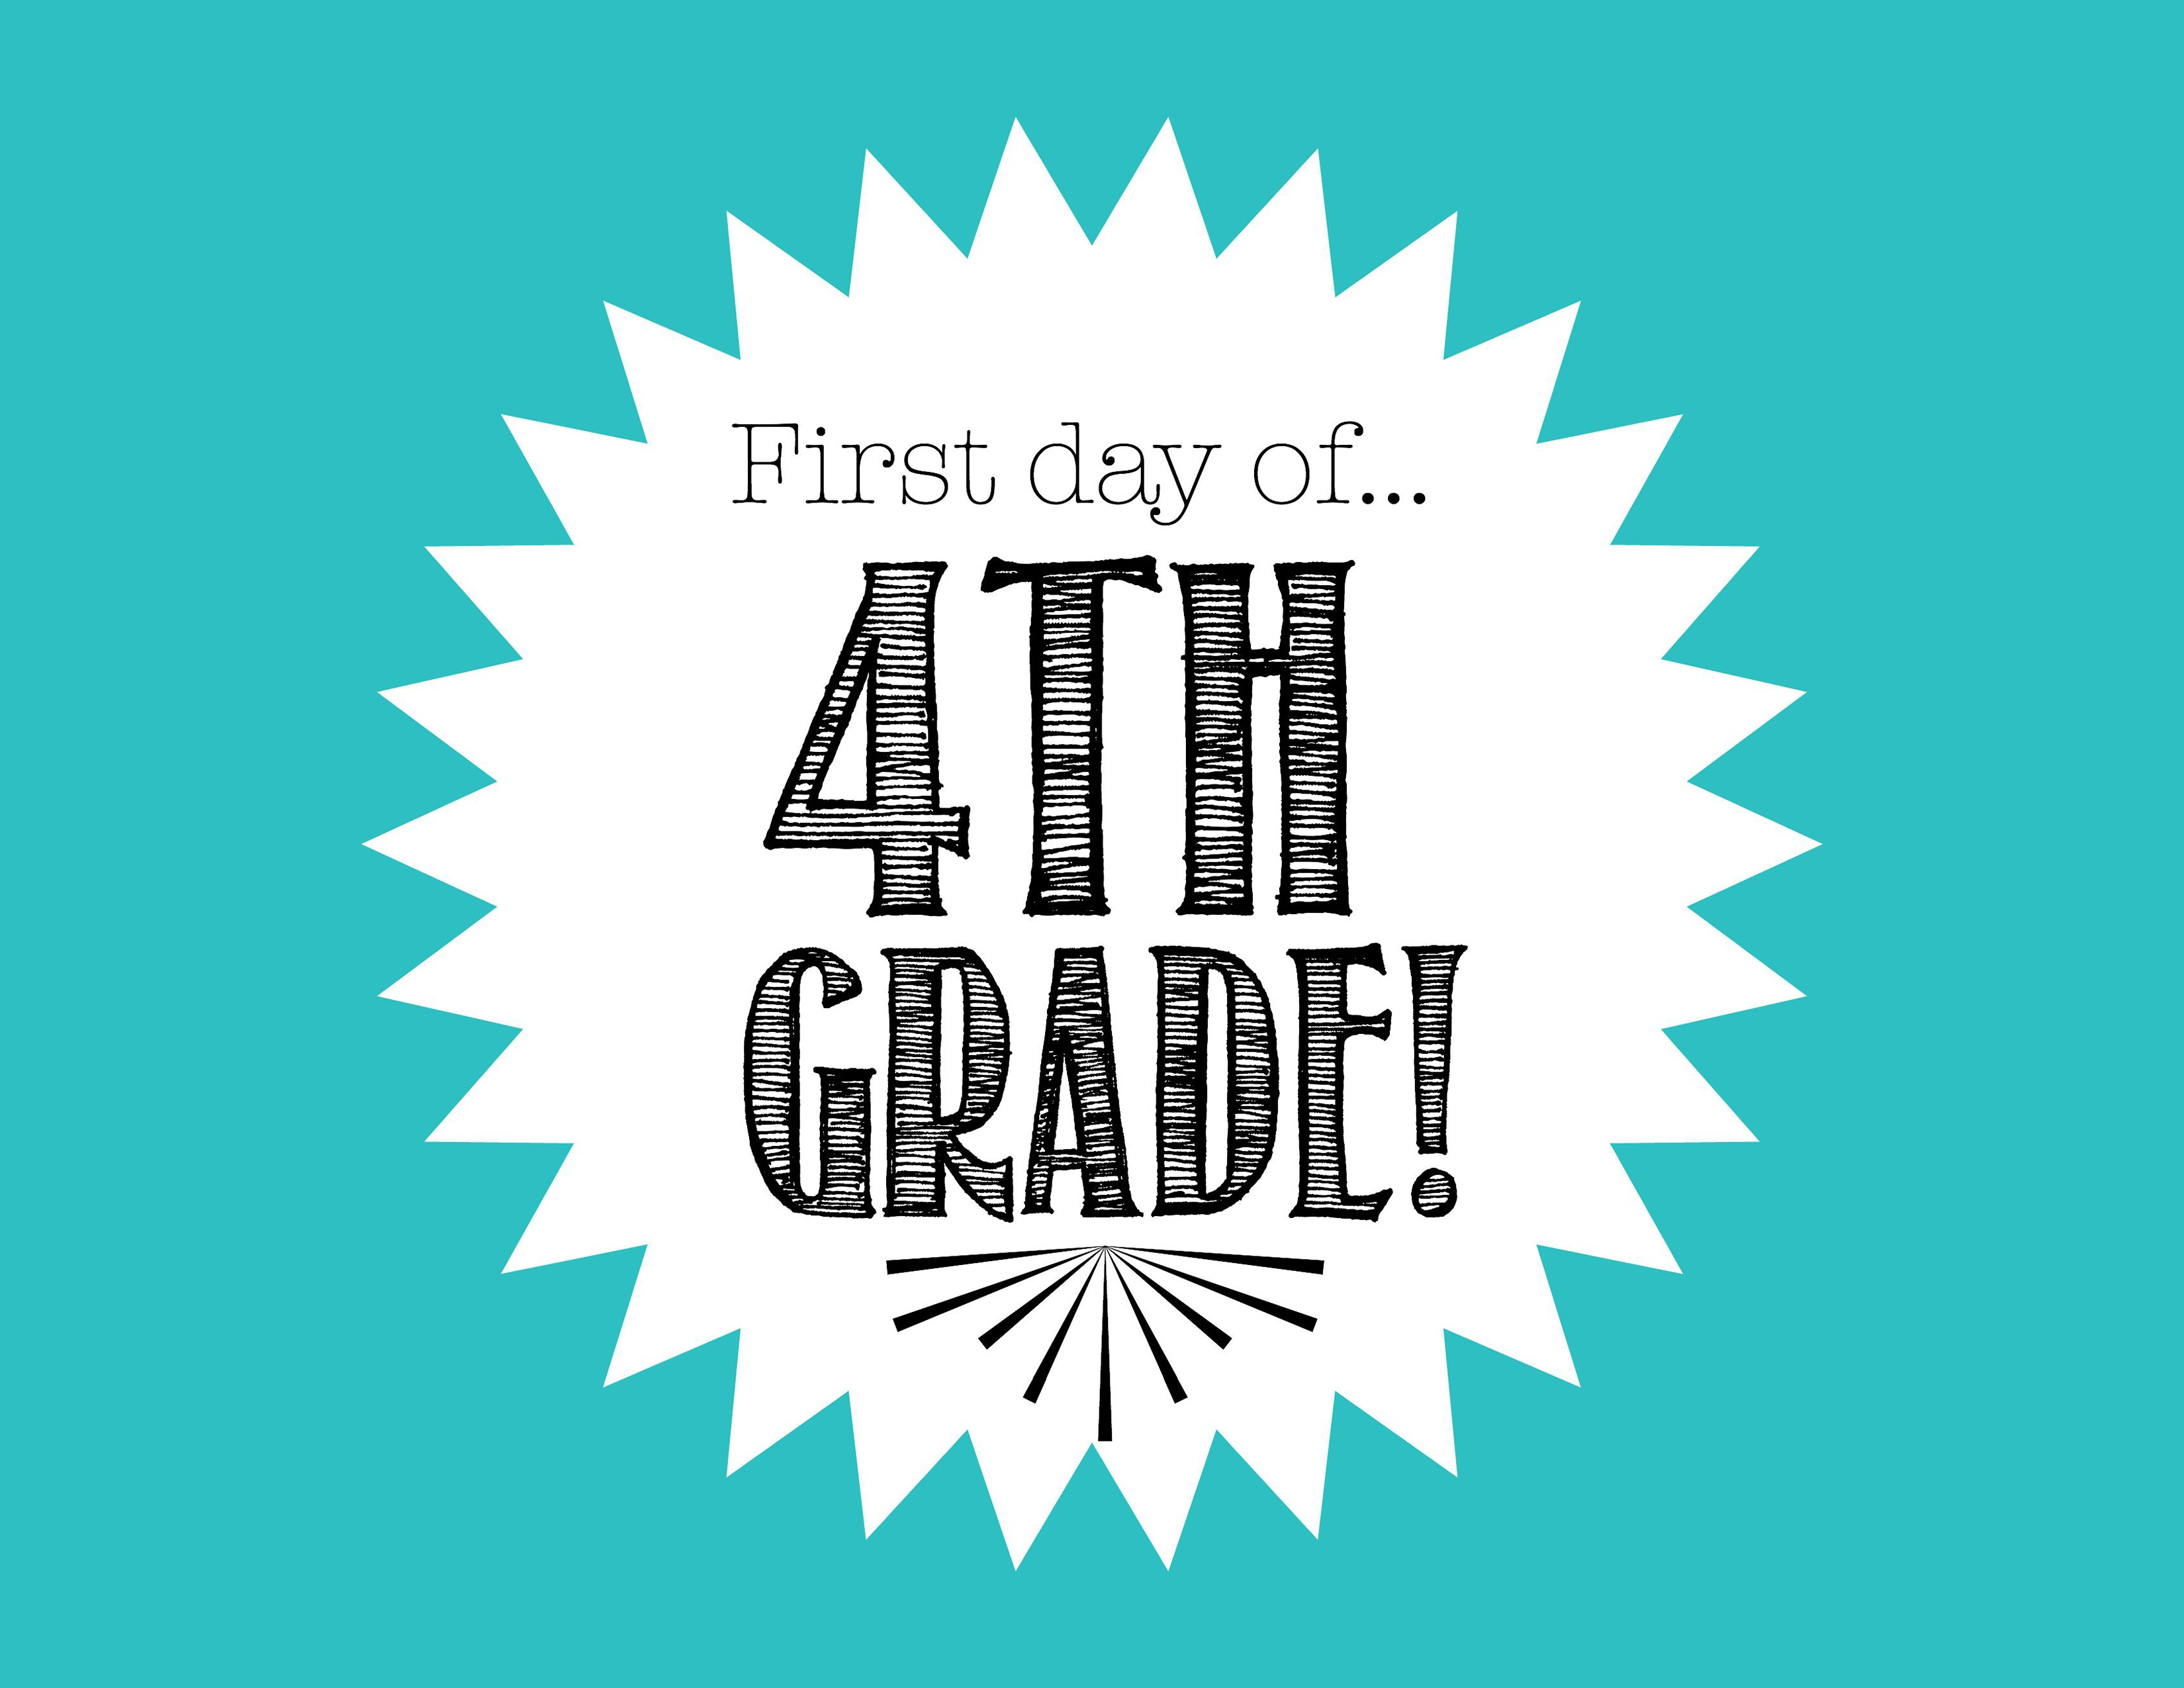 First Day Of 4Th Grade Free Back To School Printable - Freebies2Deals - First Day Of Fourth Grade Free Printable